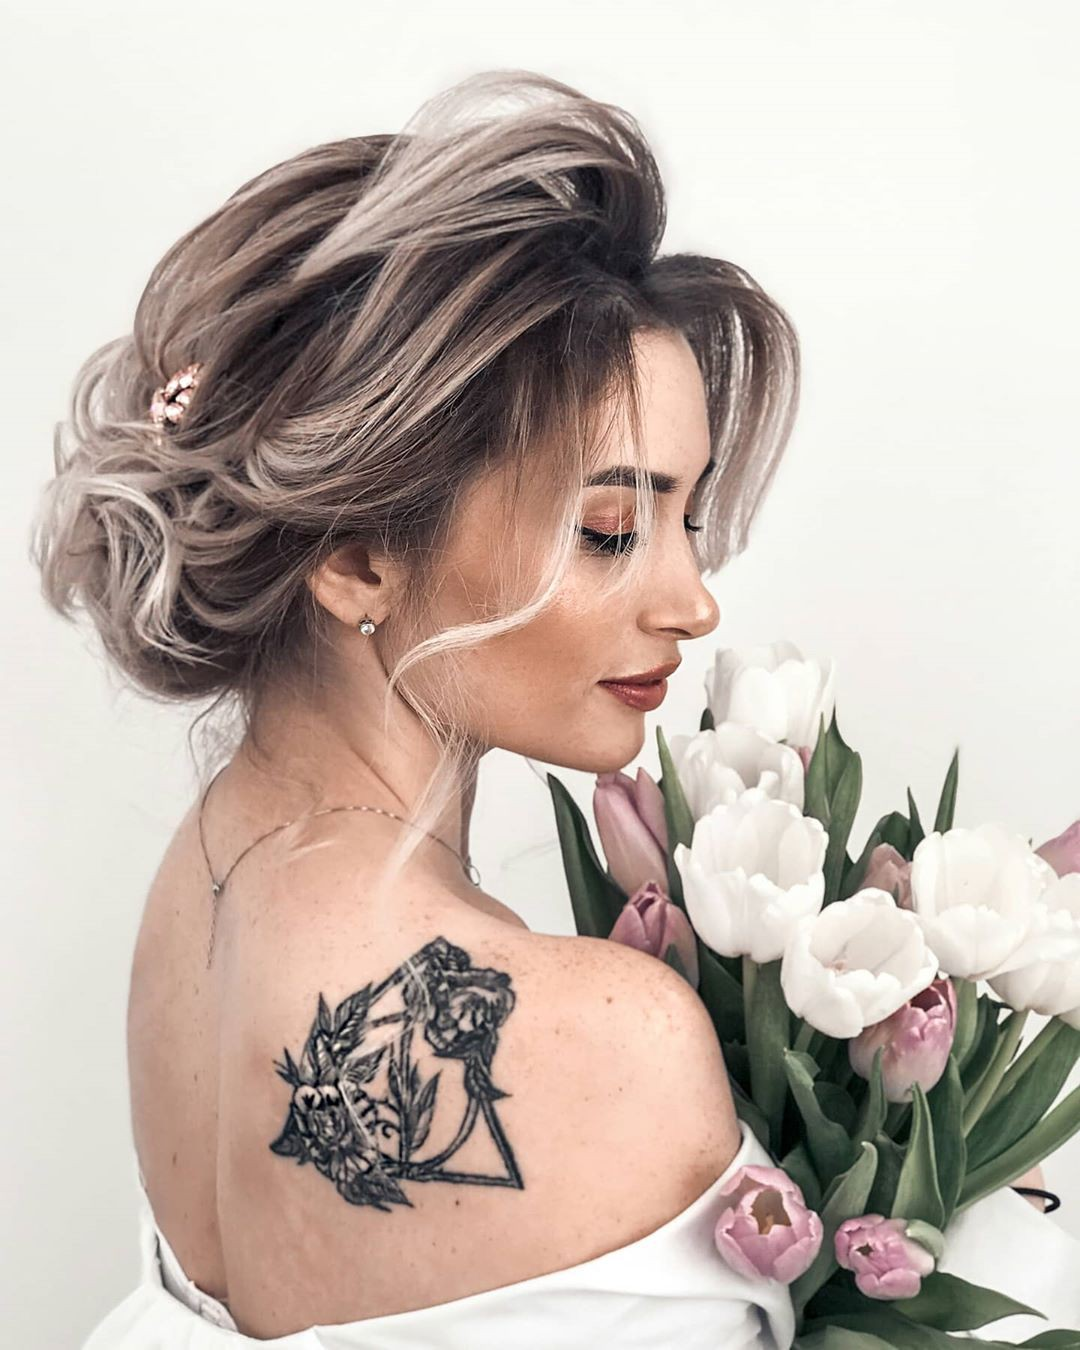 Aleksandra Glance Hairstyle For Girls, cute and sexy Hairstyle, temporary tattoo